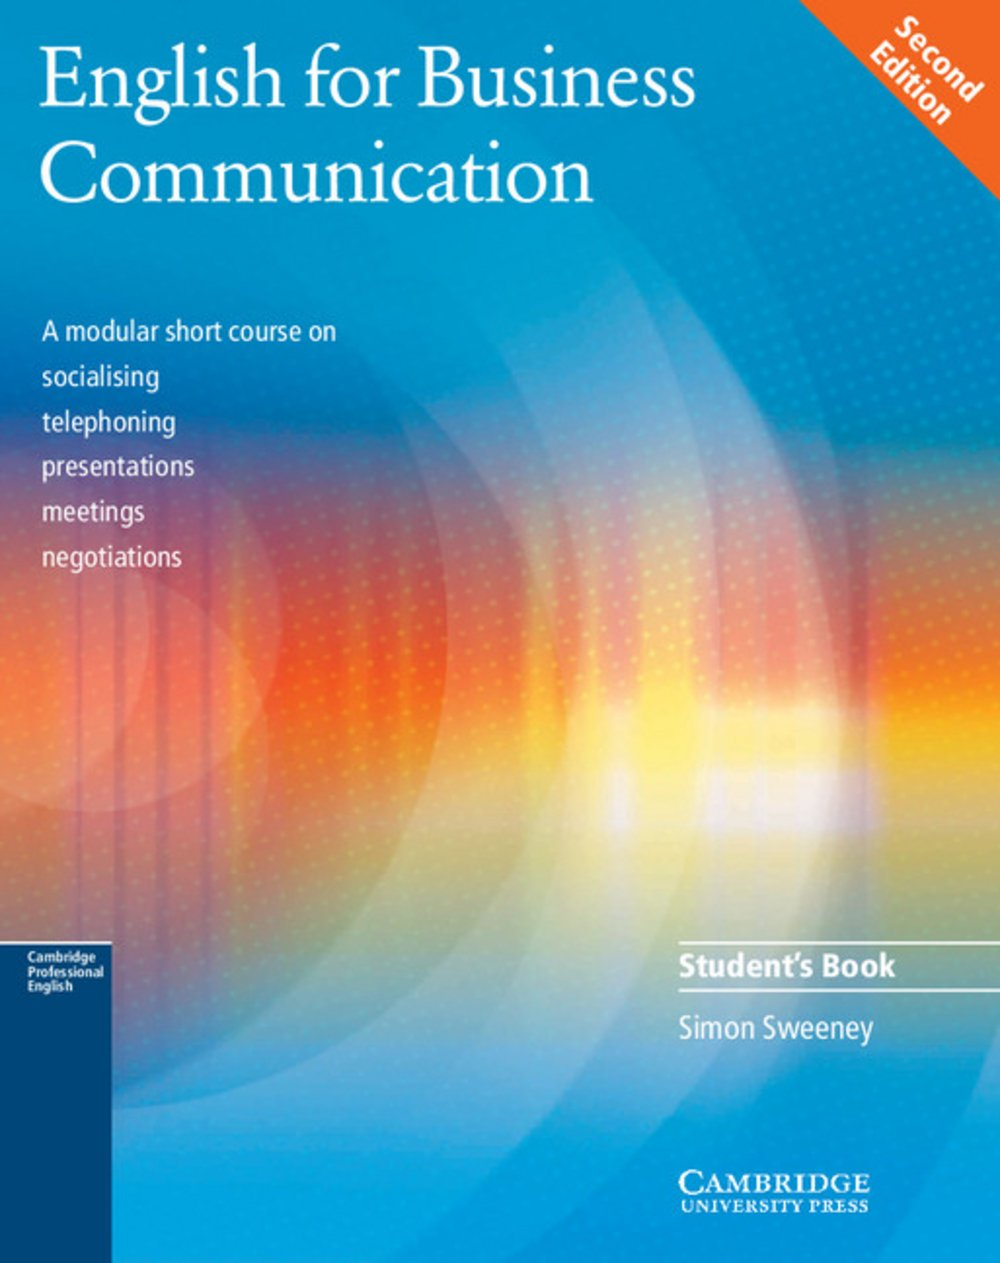 English for Business Communication Second Edition: Intermediate to Upper Intermediate. Student's Book